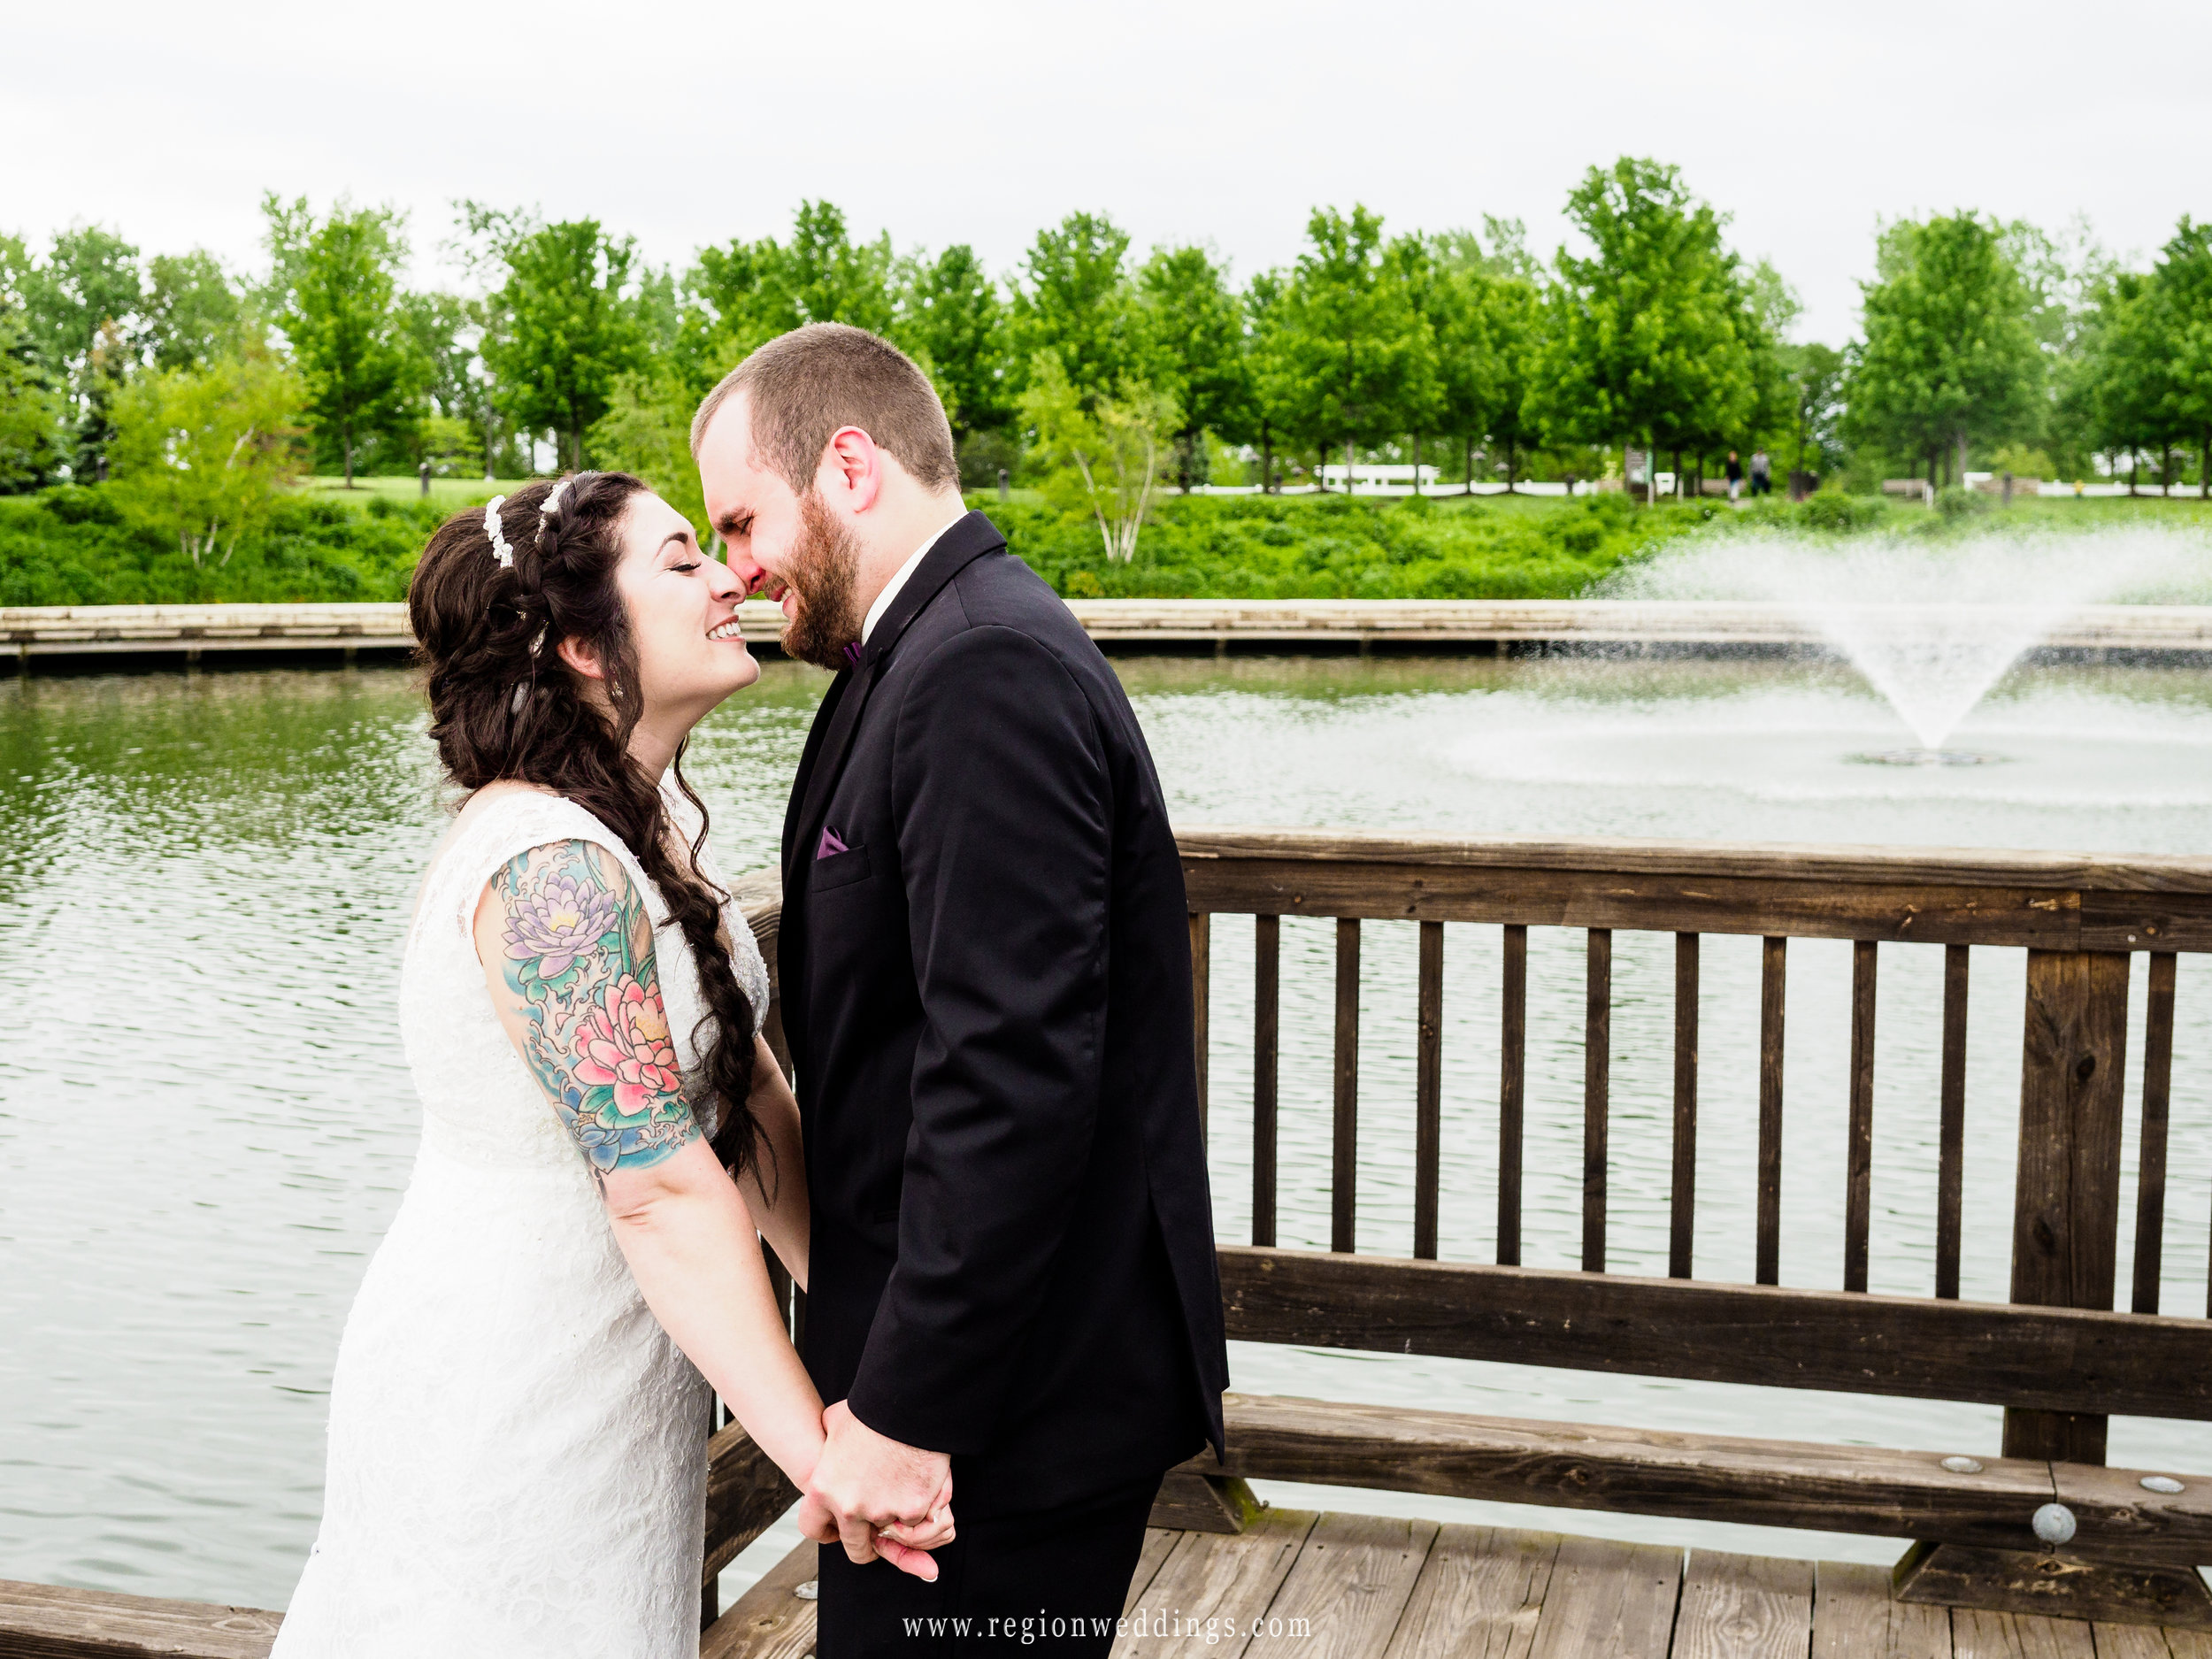 Bride and groom eskimo kiss during their first look.